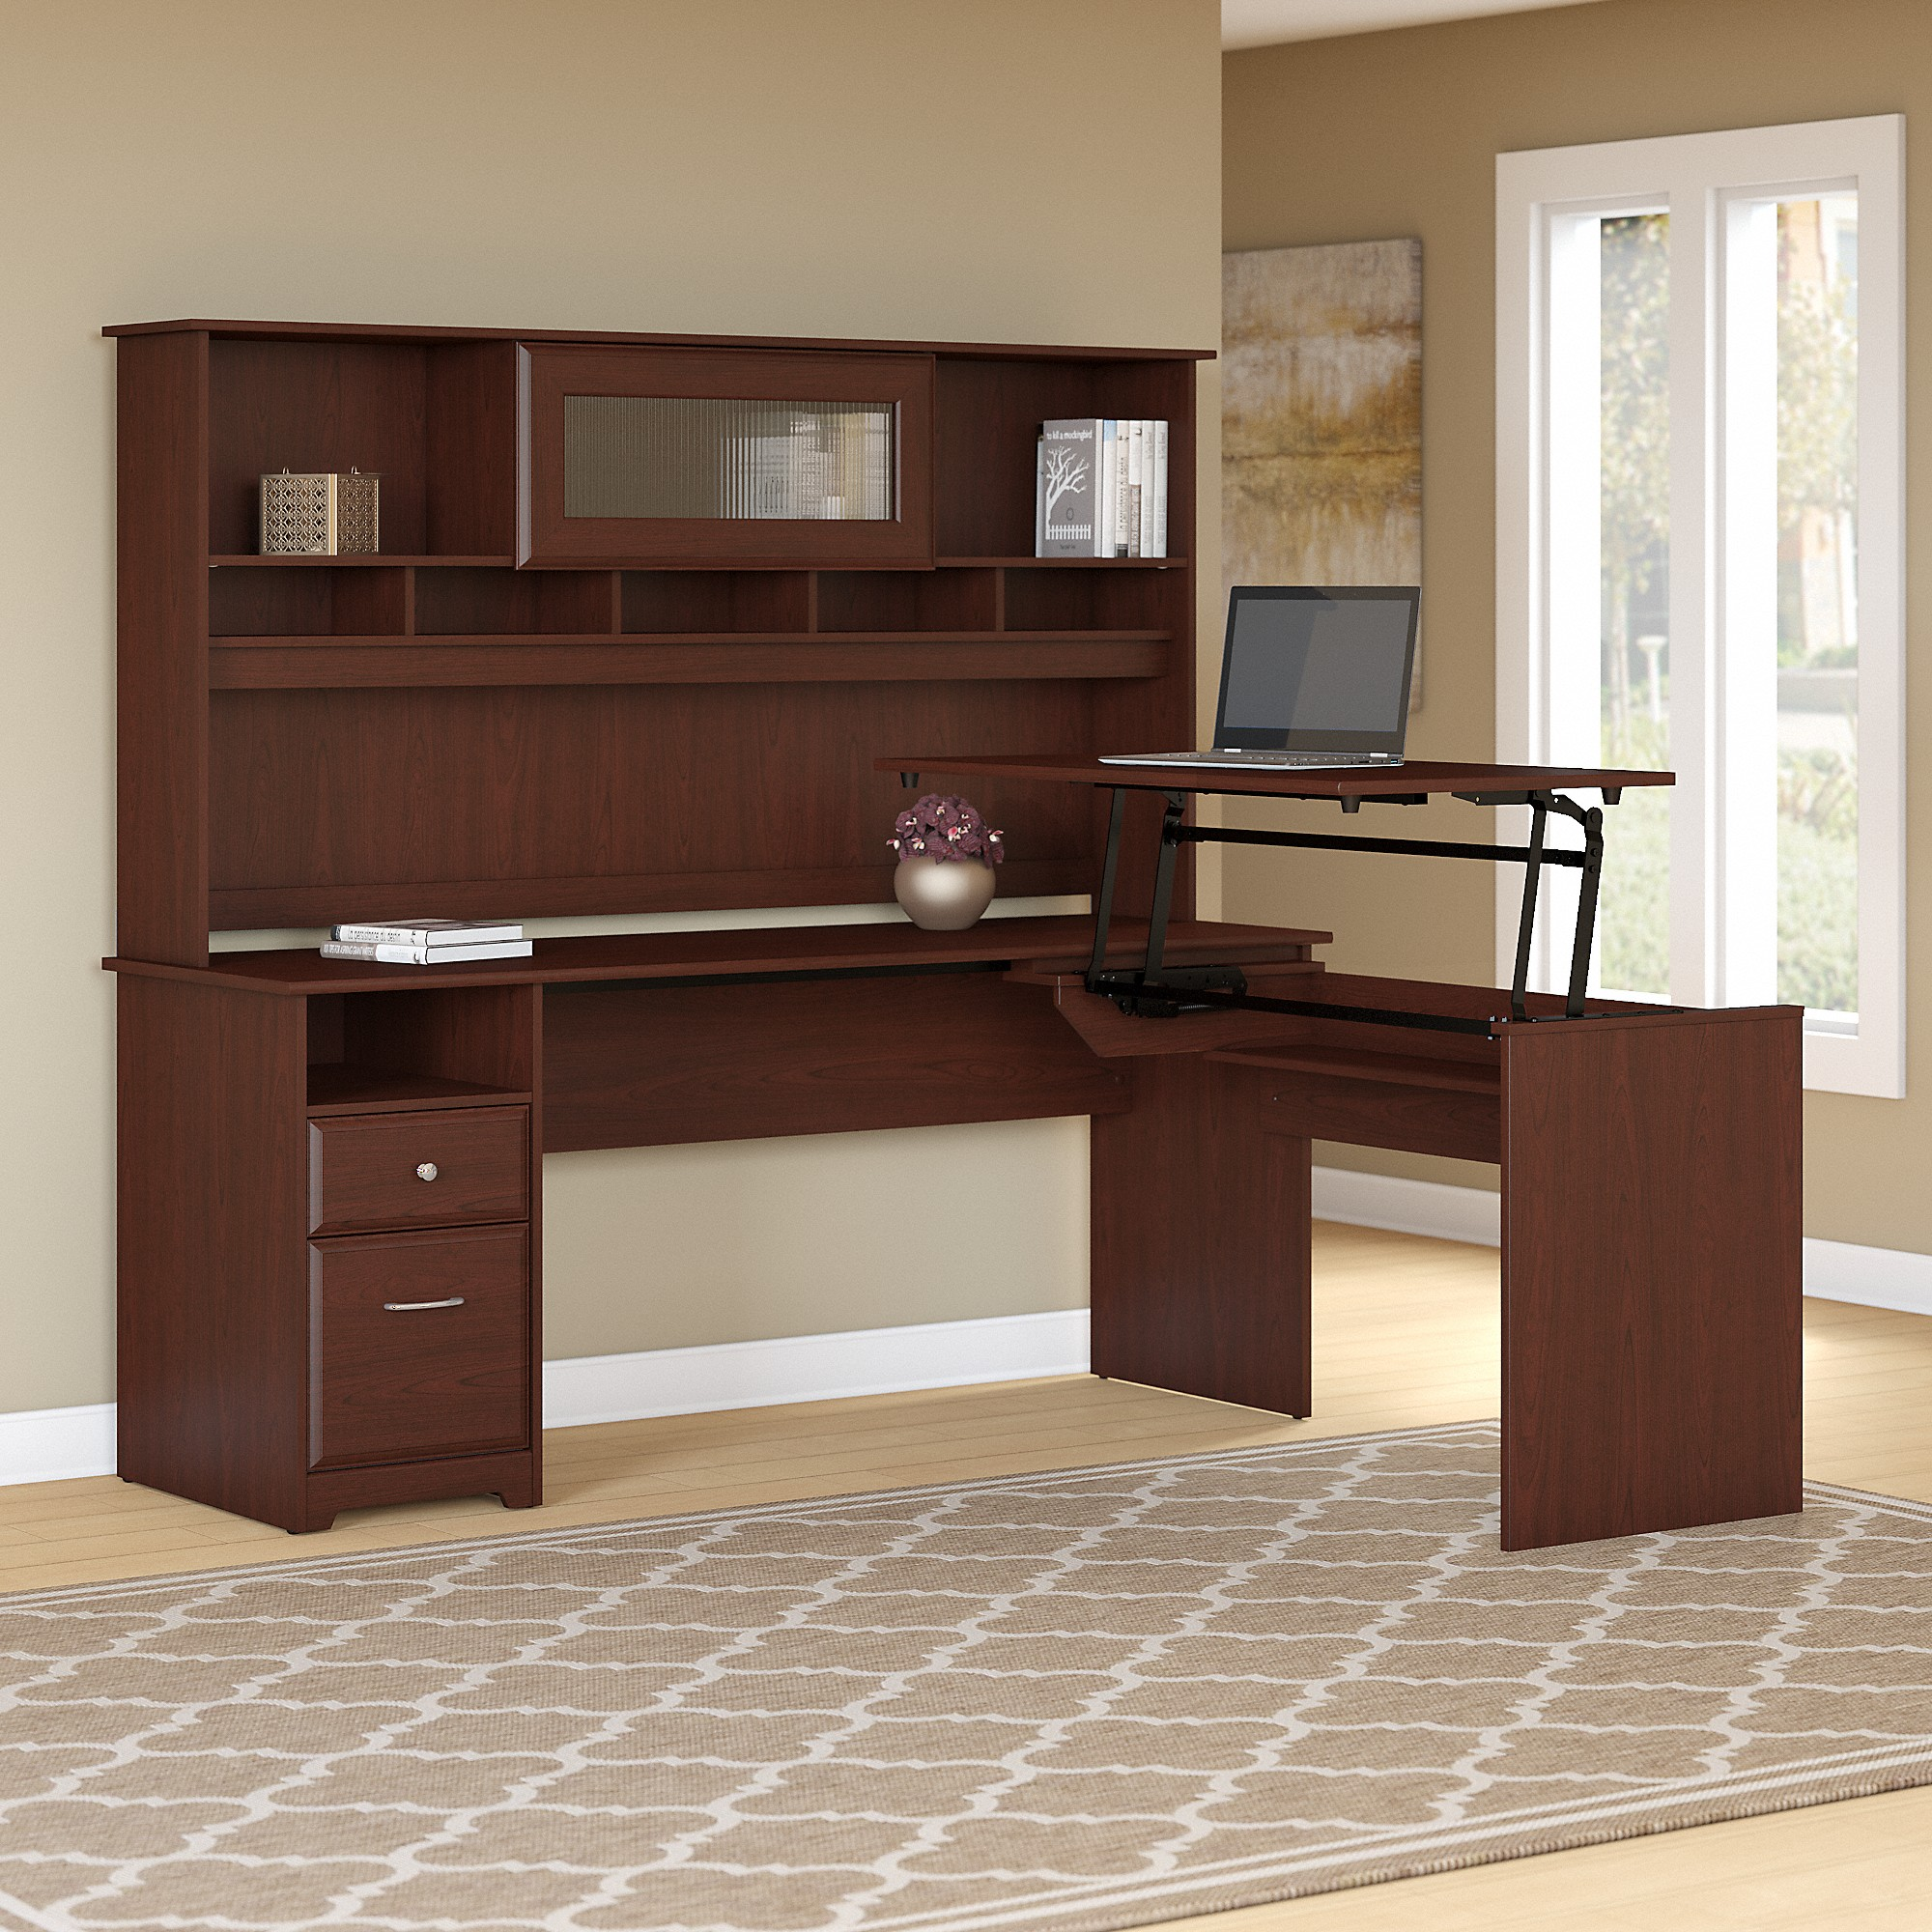 Bush Furniture Cabot 72W 3 Position L Shaped Sit to Stand Desk with Hutch